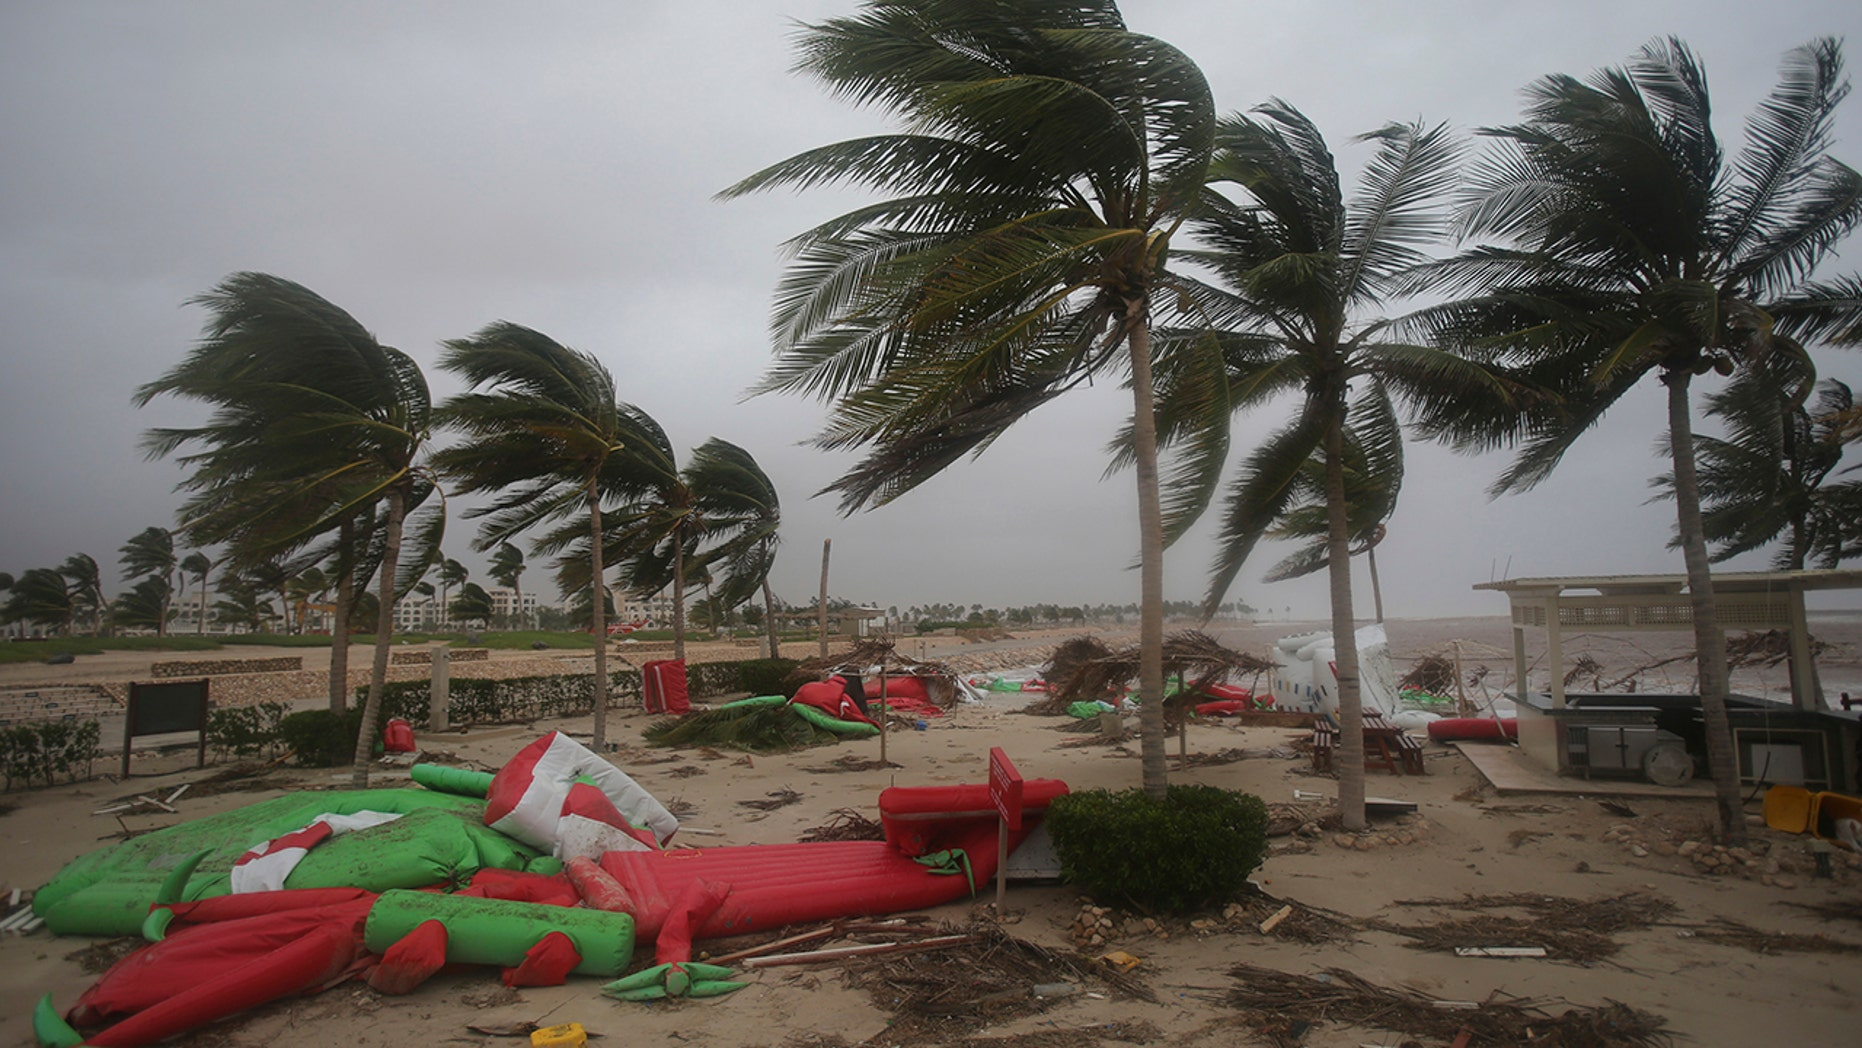 Debris litter a beach after Cyclone Mekunu in Salalah, Oman, Saturday, May 26, 2018. Cyclone Mekunu blew into the Arabian Peninsula early Saturday, drenching arid Oman and Yemen with rain, cutting off power lines, officials said. (AP Photo/Kamran Jebreili)